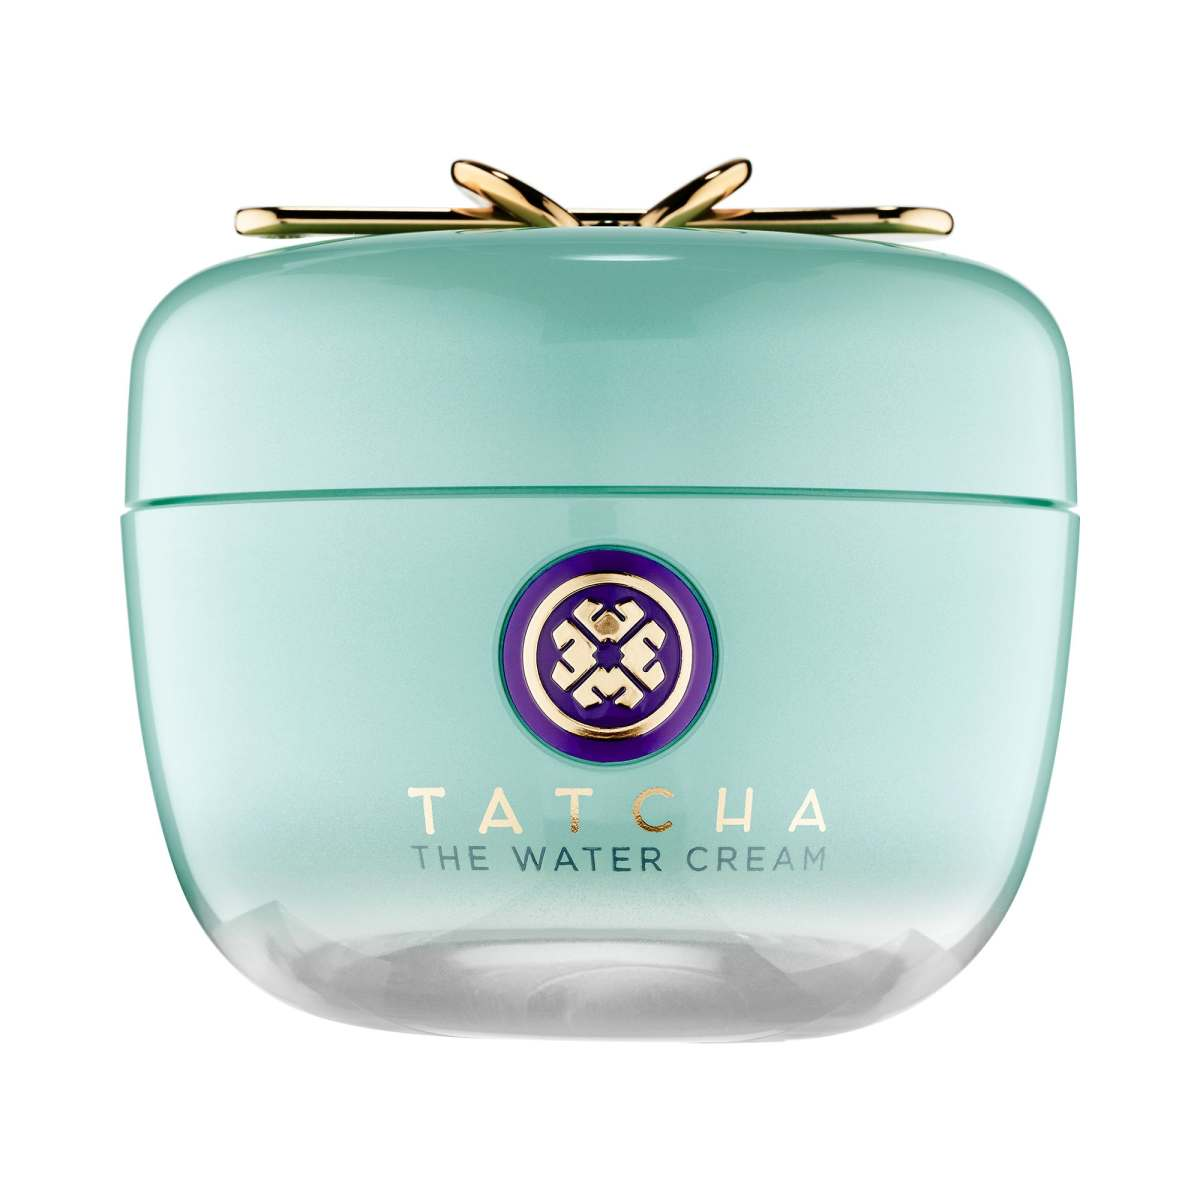 The Water Cream Oil-Free Pore Minimizing Moisturize by Tatcha #16